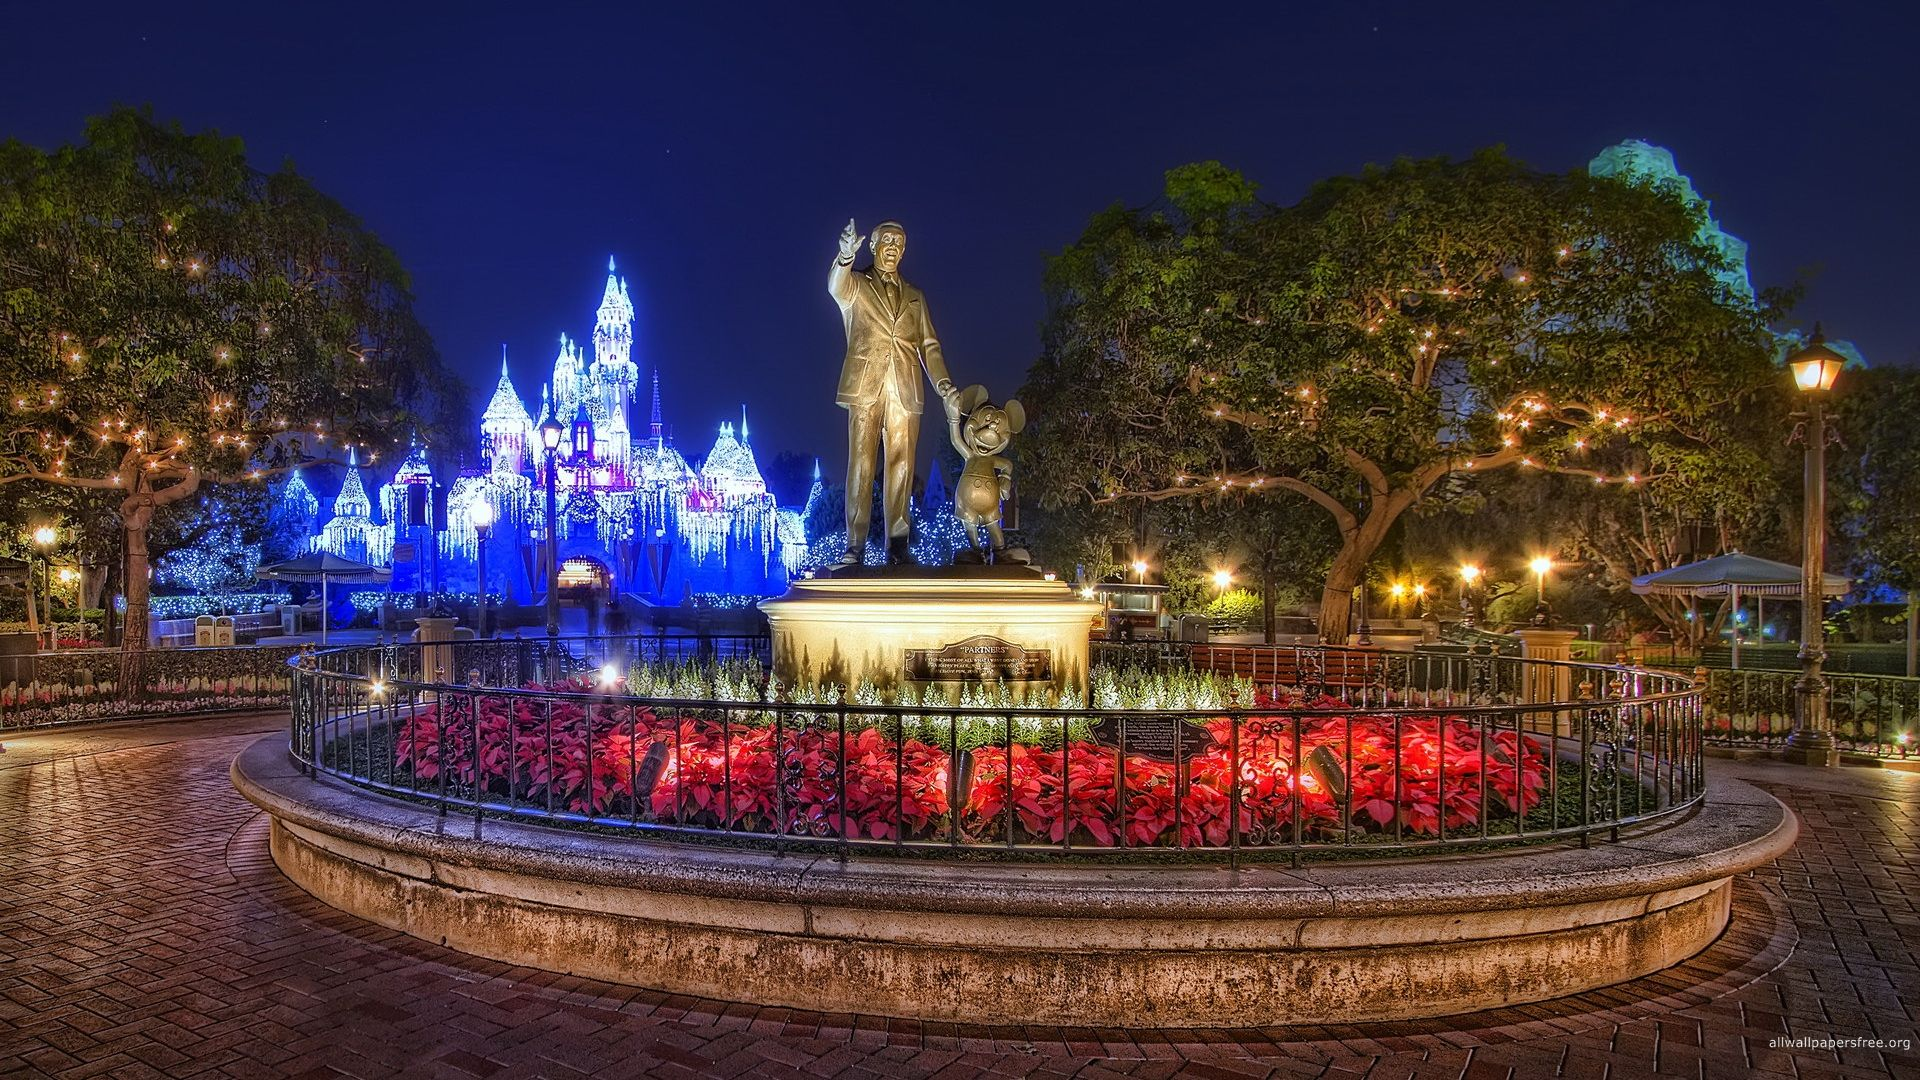 Xmas Stuff For Disney World Christmas Wallpaper Disney World Christmas Disney World Magic Kingdom Disney World Pictures